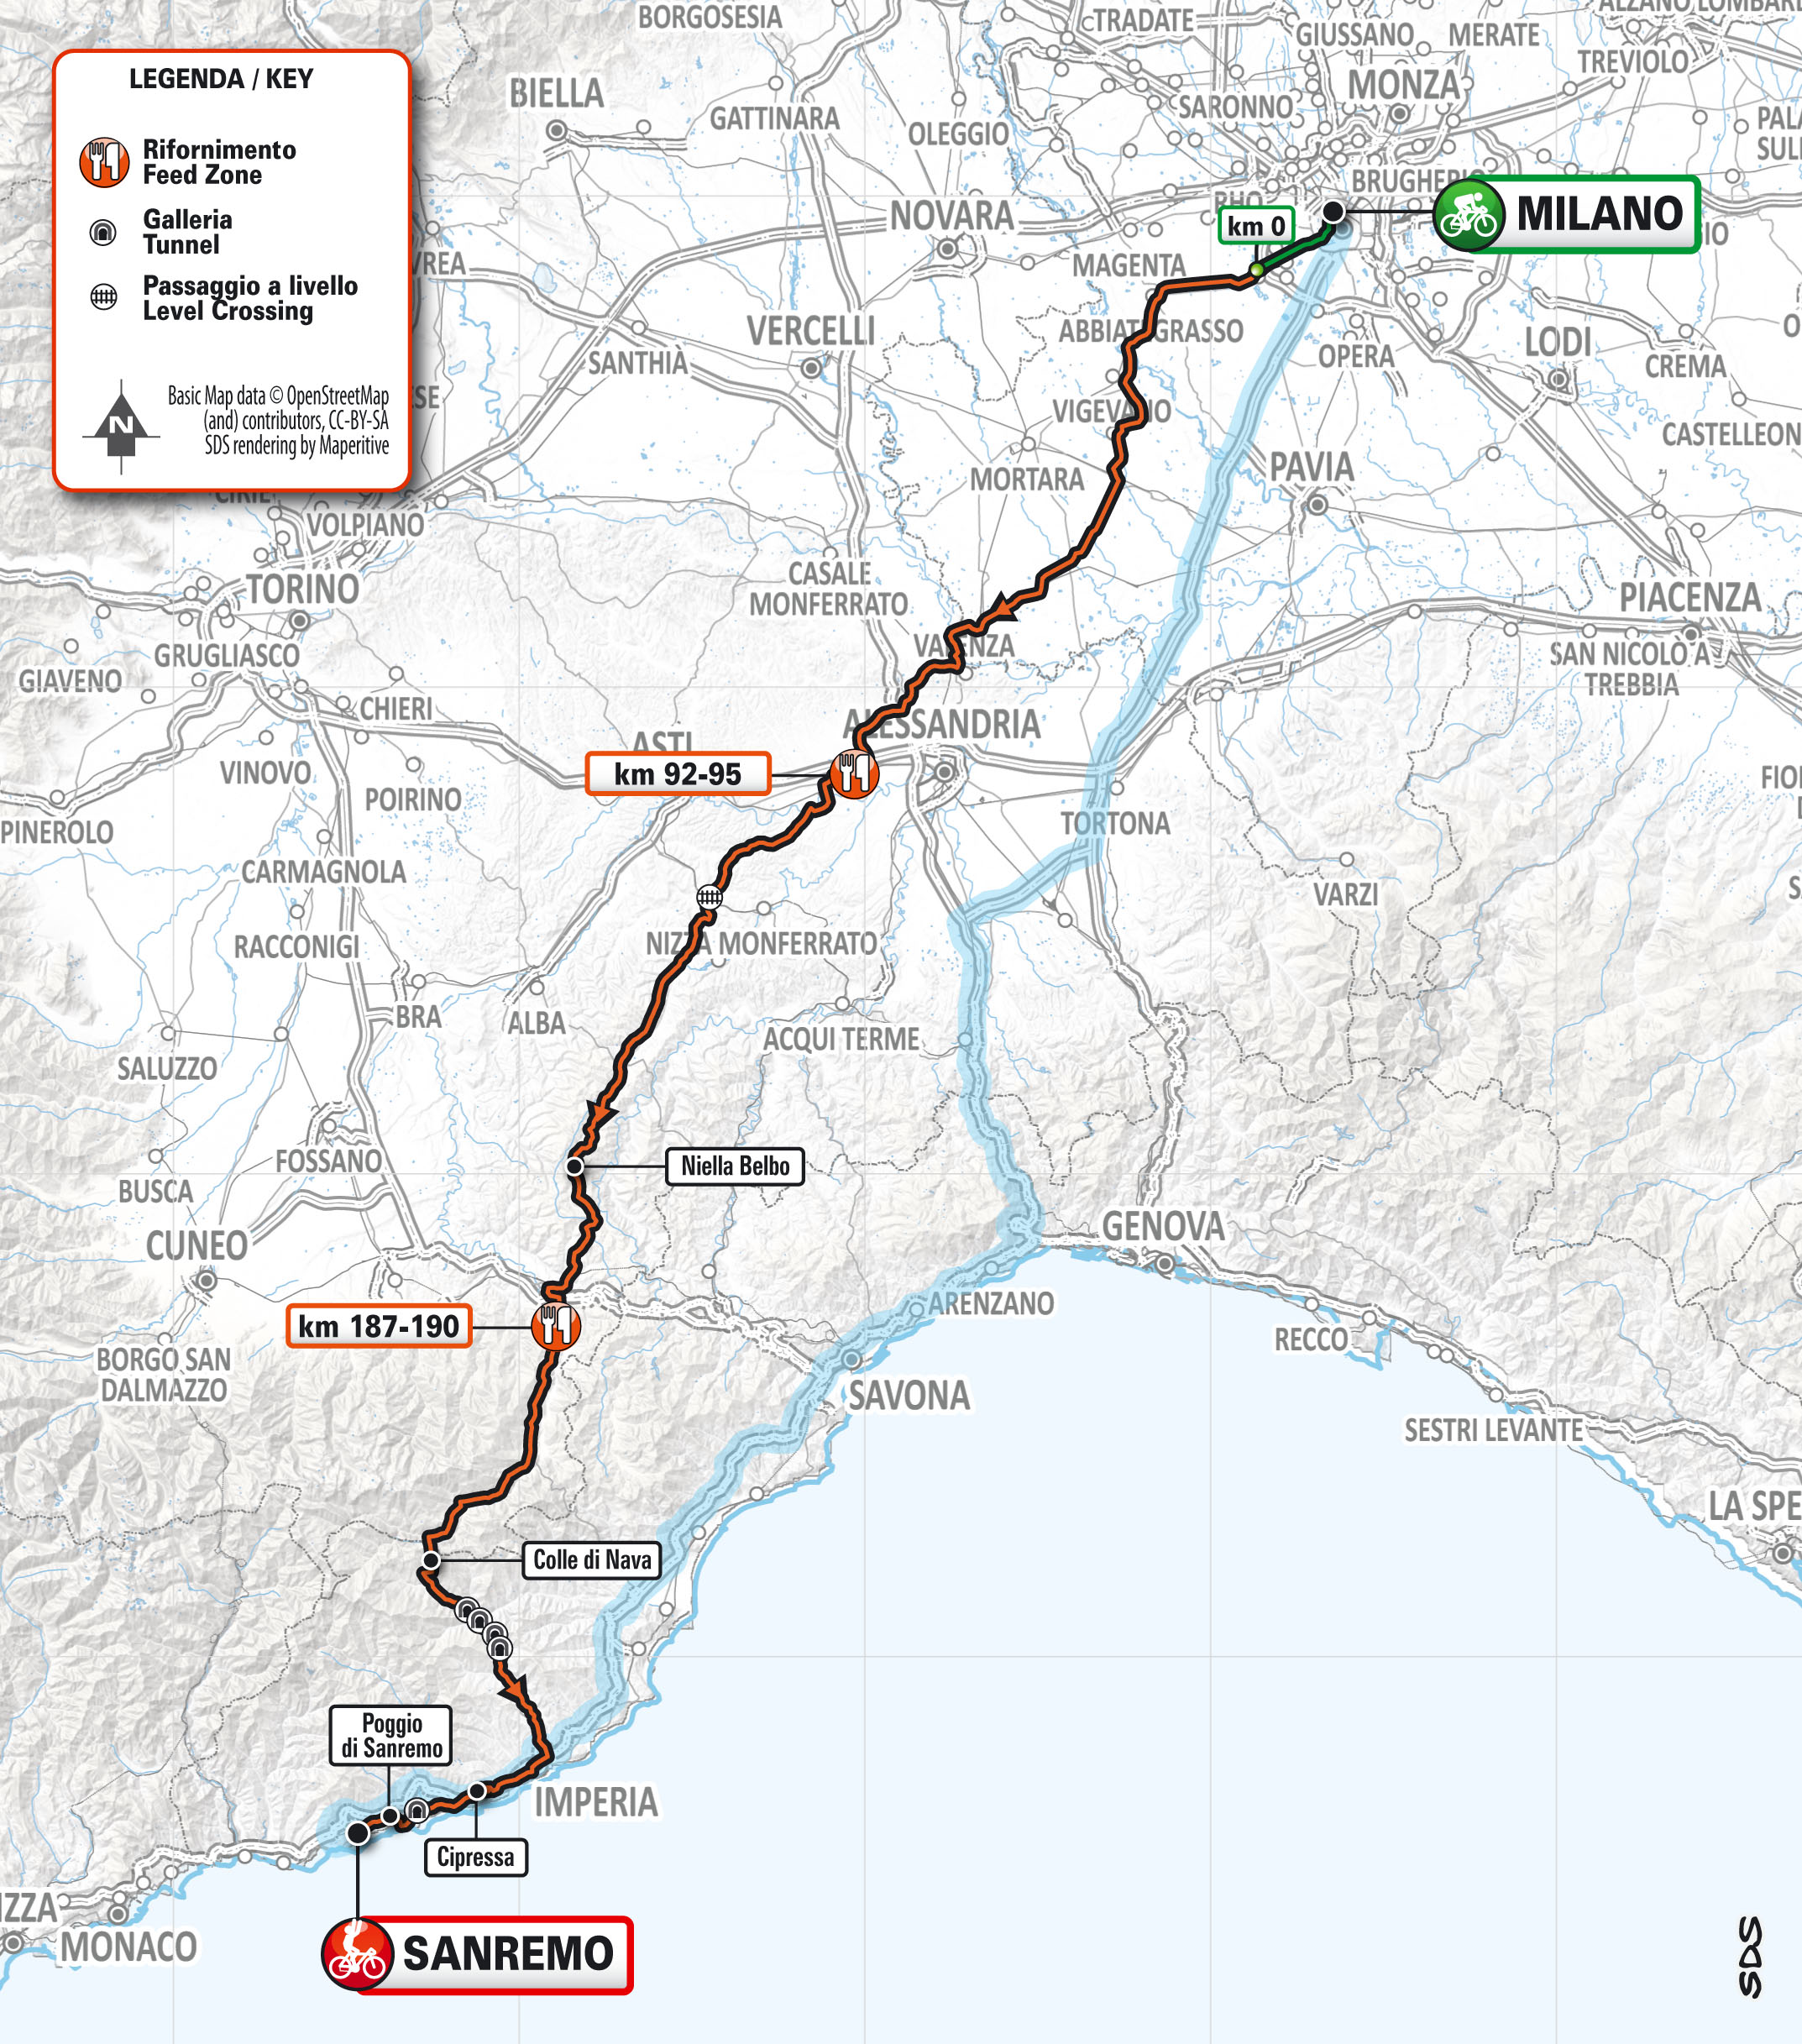 Milan-San Remo 2020 revised route